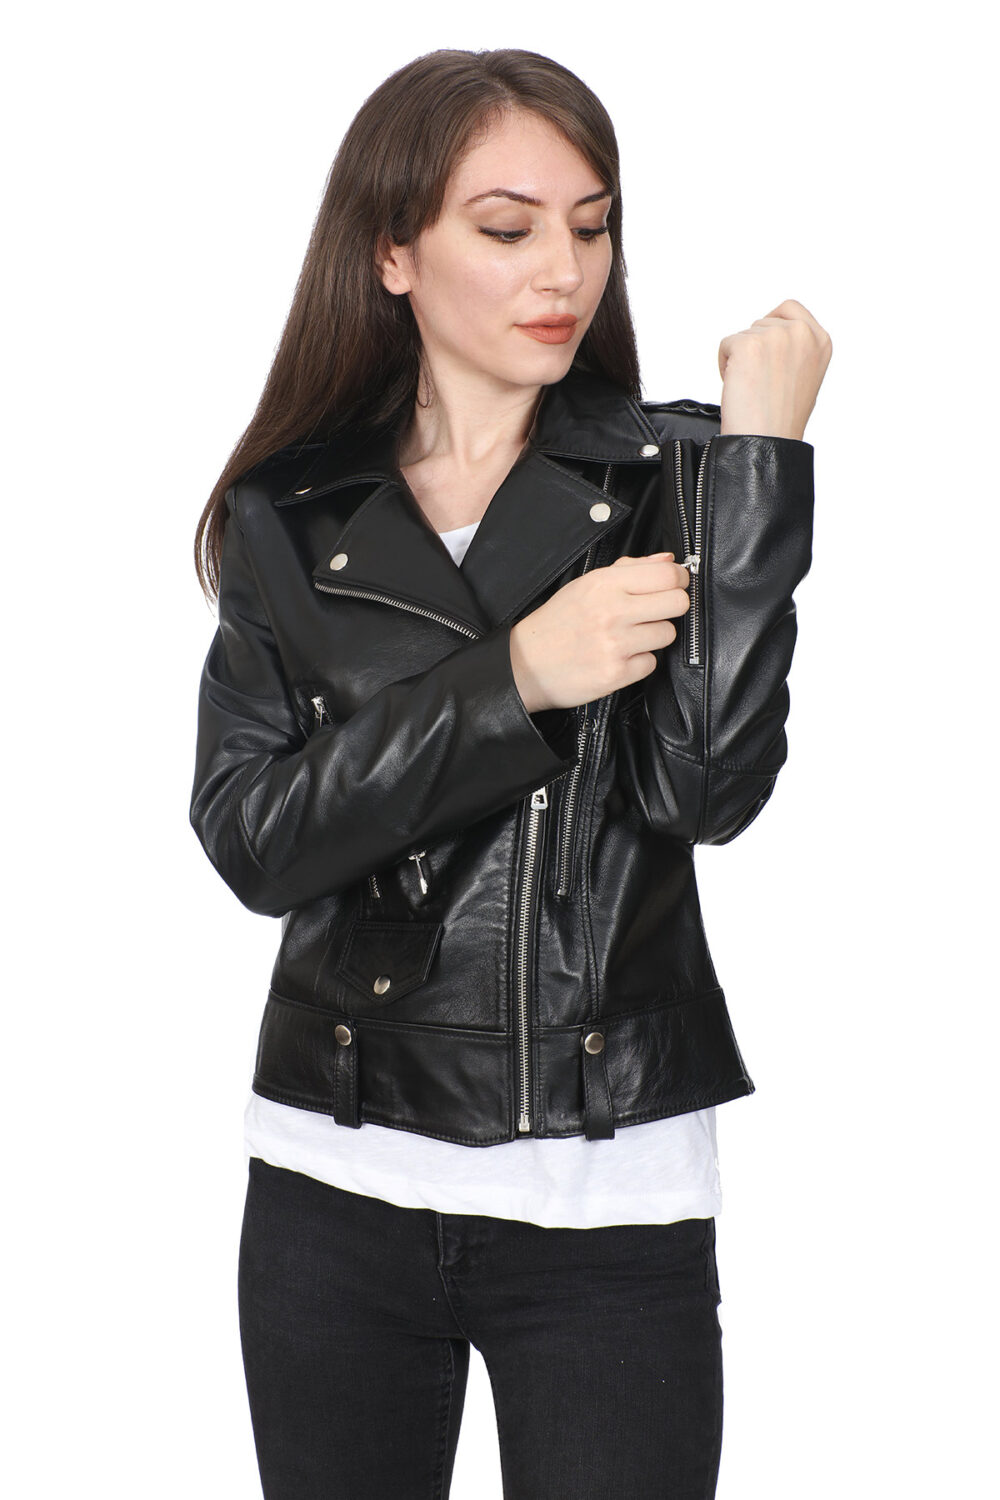 Real Leather Jacket Price